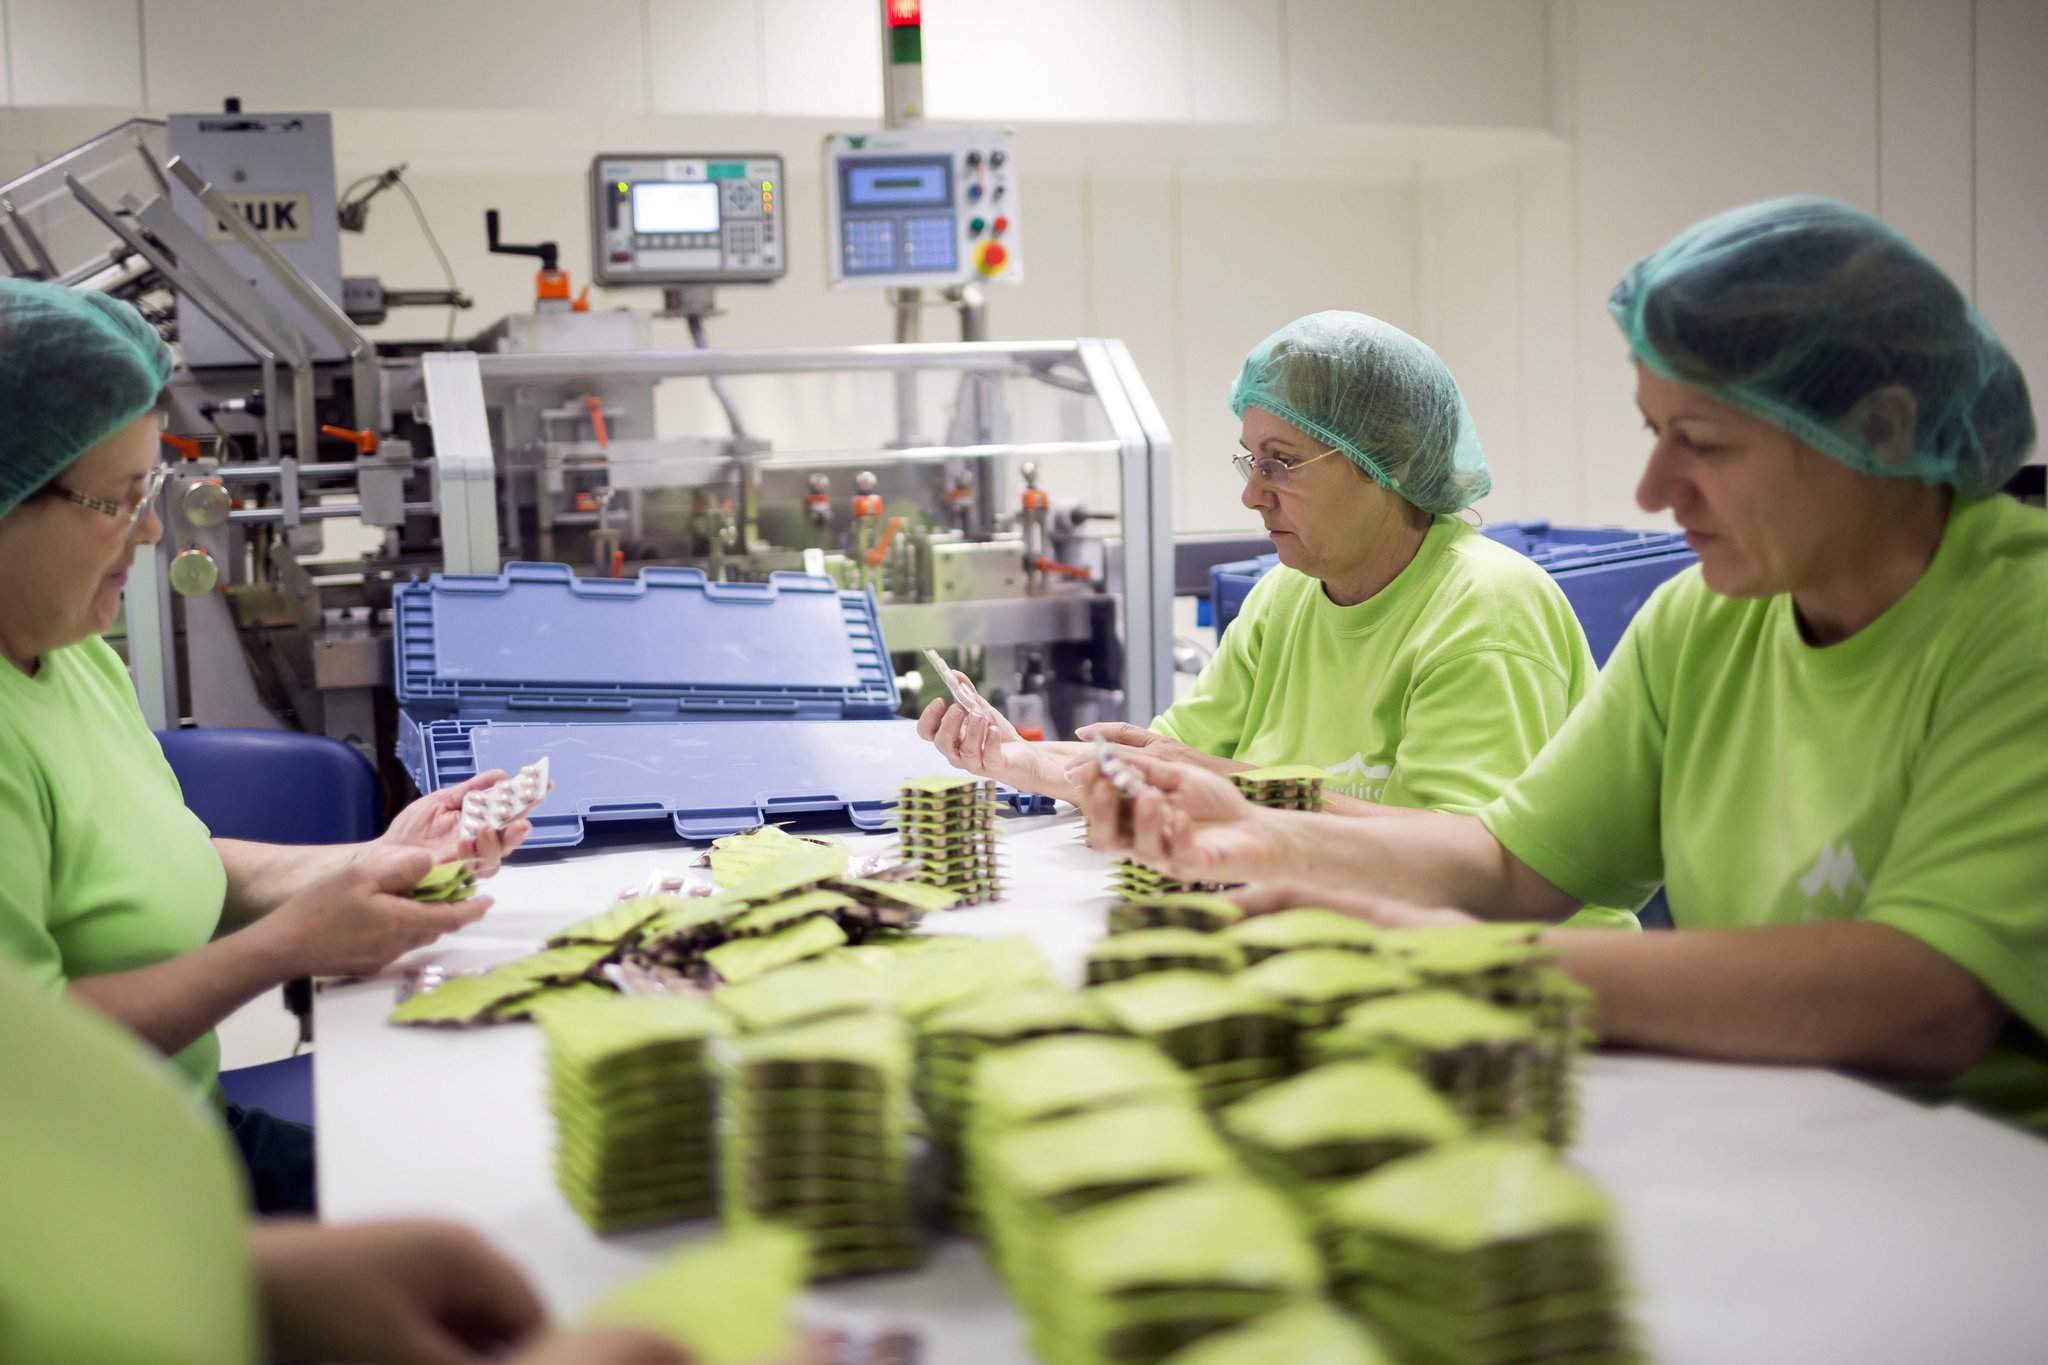 The pharmaceuticals industry may become a growth engine of Hungary's industrial sector